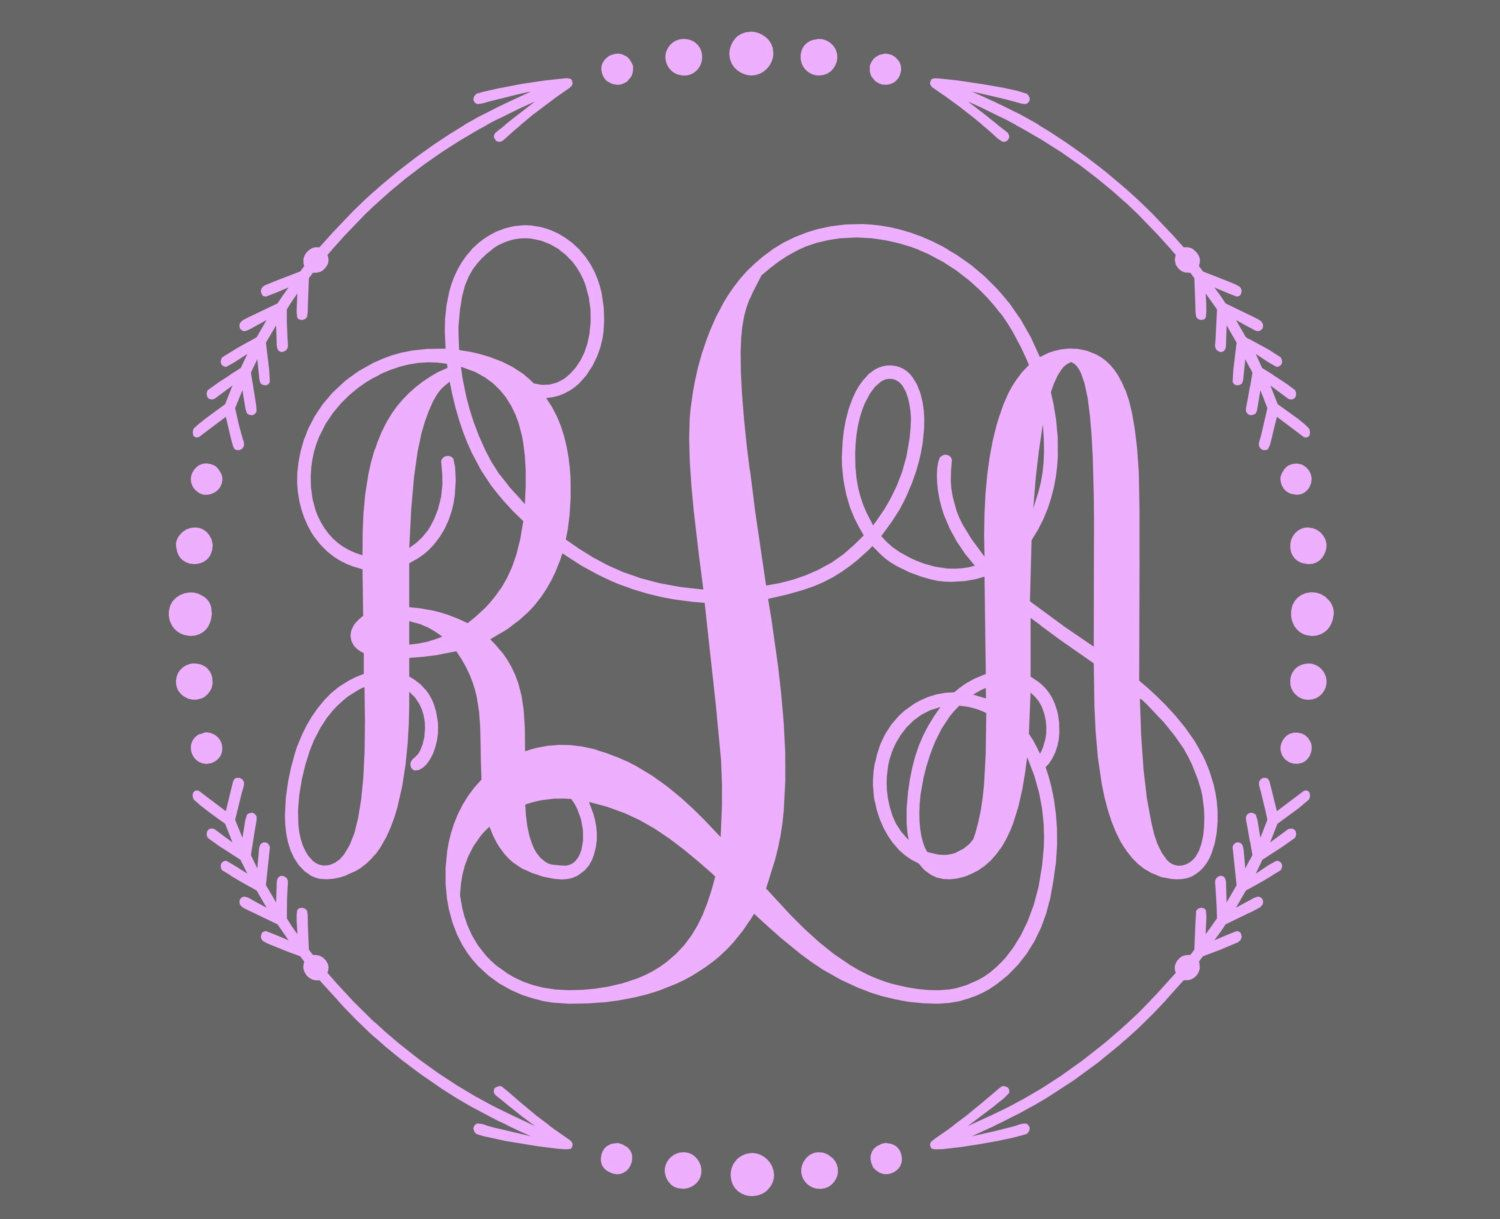 Monogram Decal Monogram Sticker For Your Car Window Cell Phone - Monogram decal on car